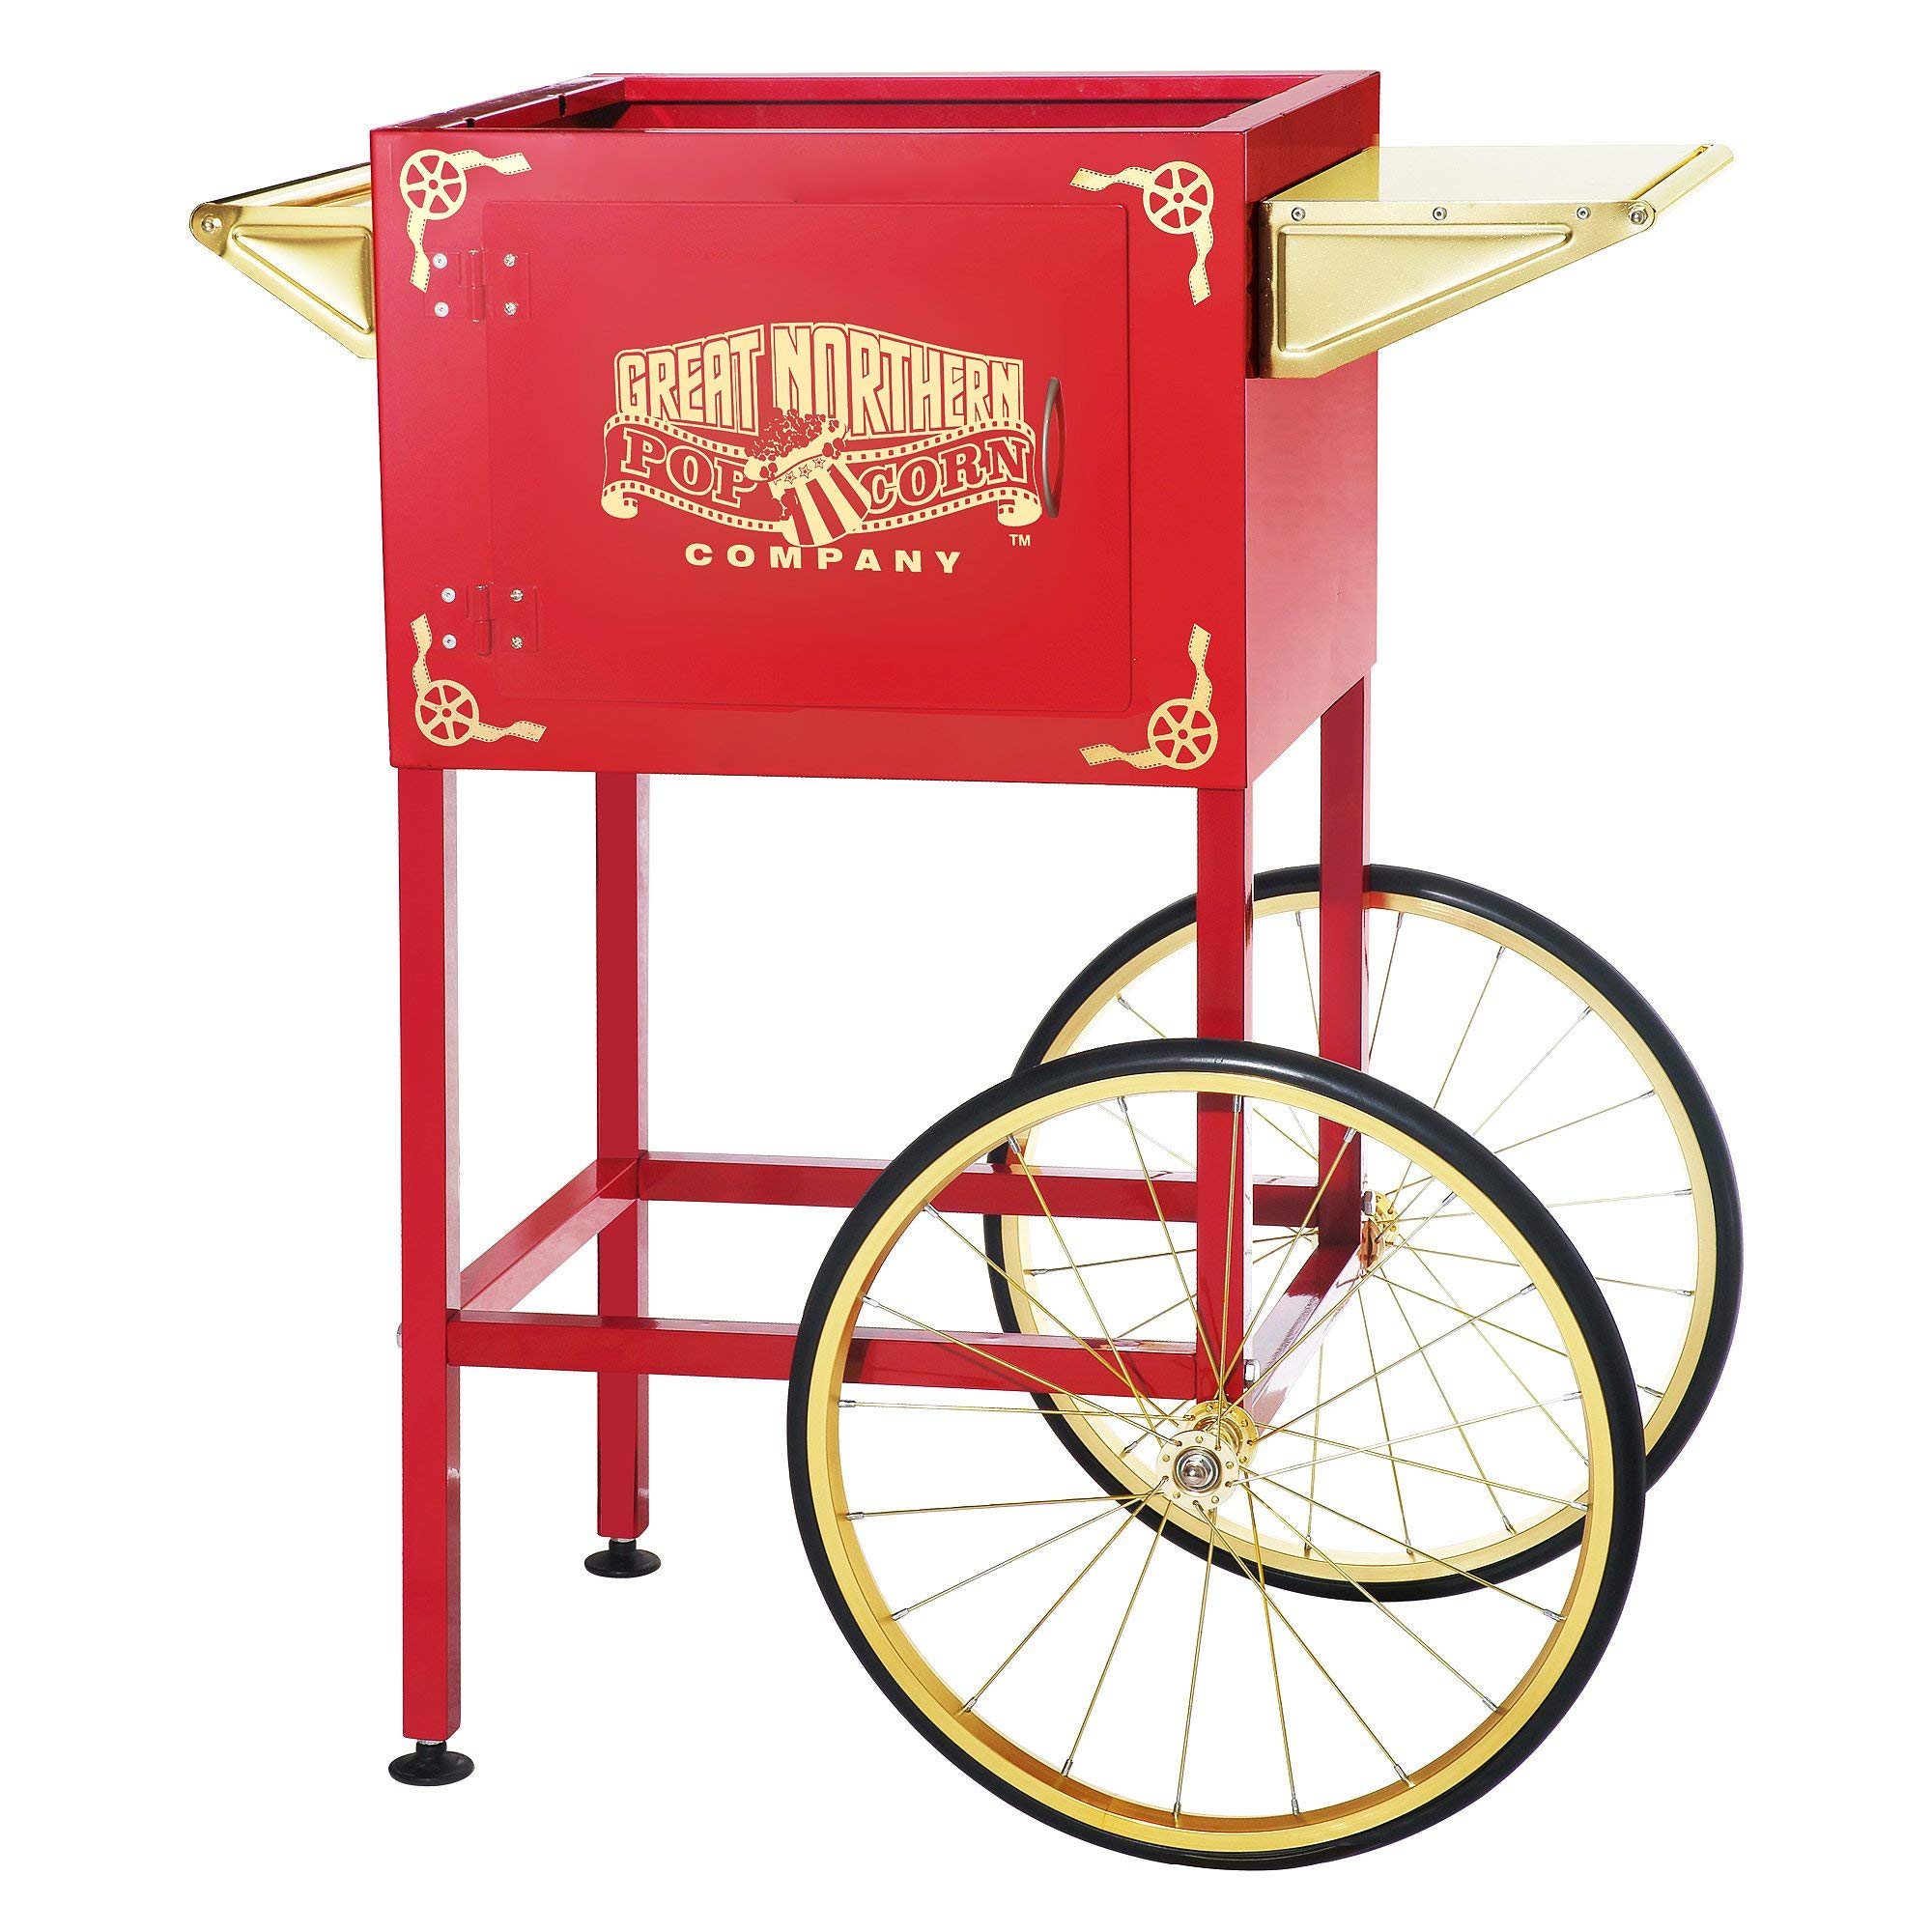 6400 Red Replacement Cart for Larger Roosevelt Style Great Northern Popcorn Machines (Renewed) by Great Northern Popcorn Company